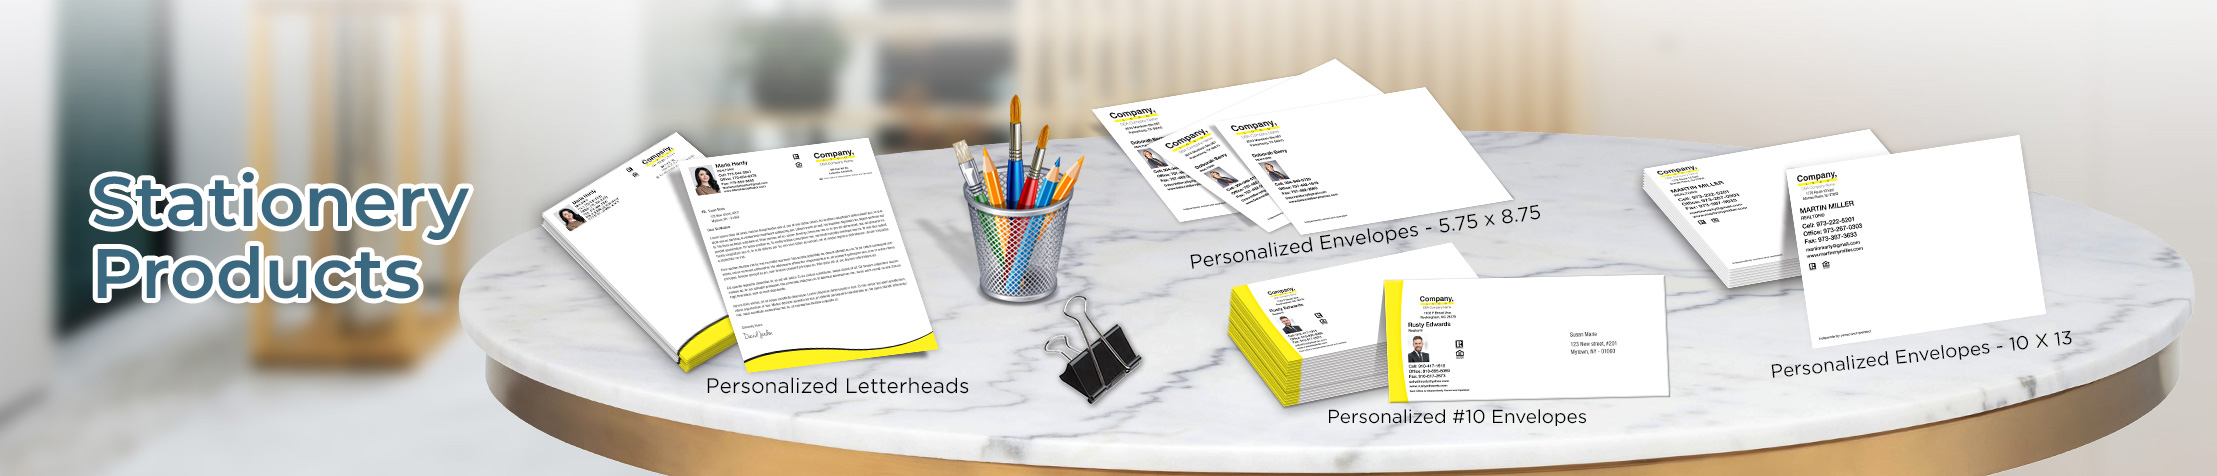 Weichert Real Estate Stationery Products - Weichert - Custom Letterhead & Envelopes Stationery Products for Realtors | BestPrintBuy.com